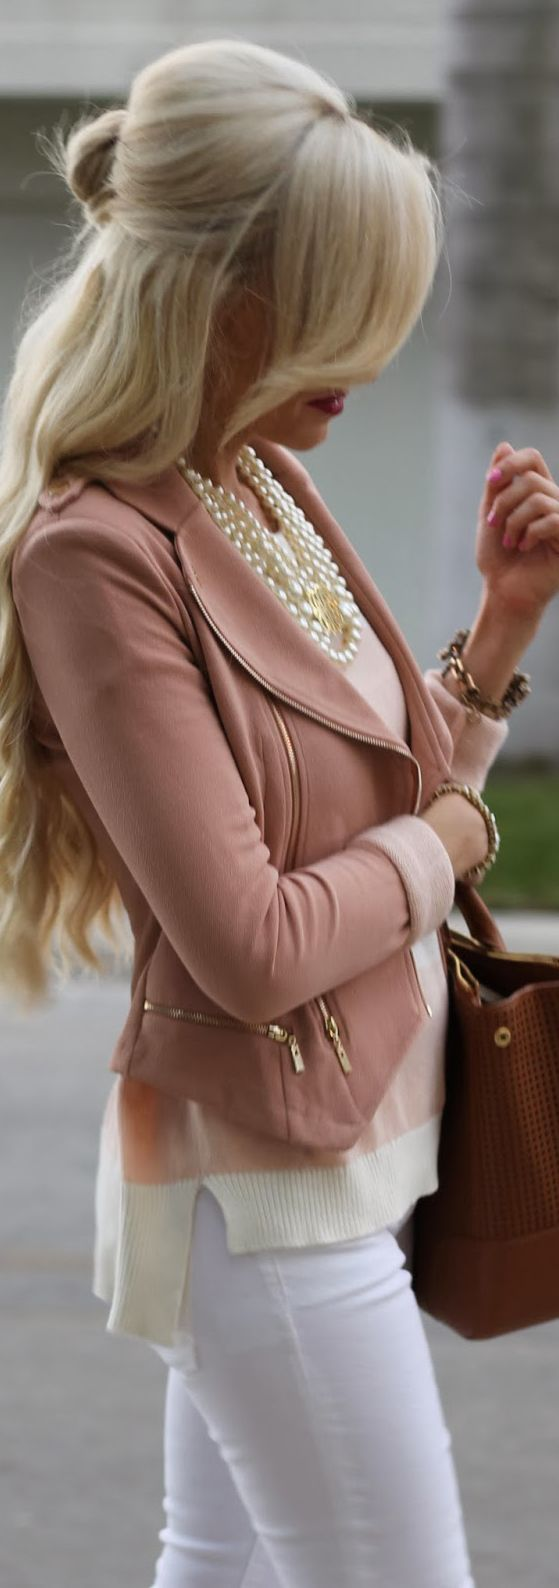 ♥The outfit